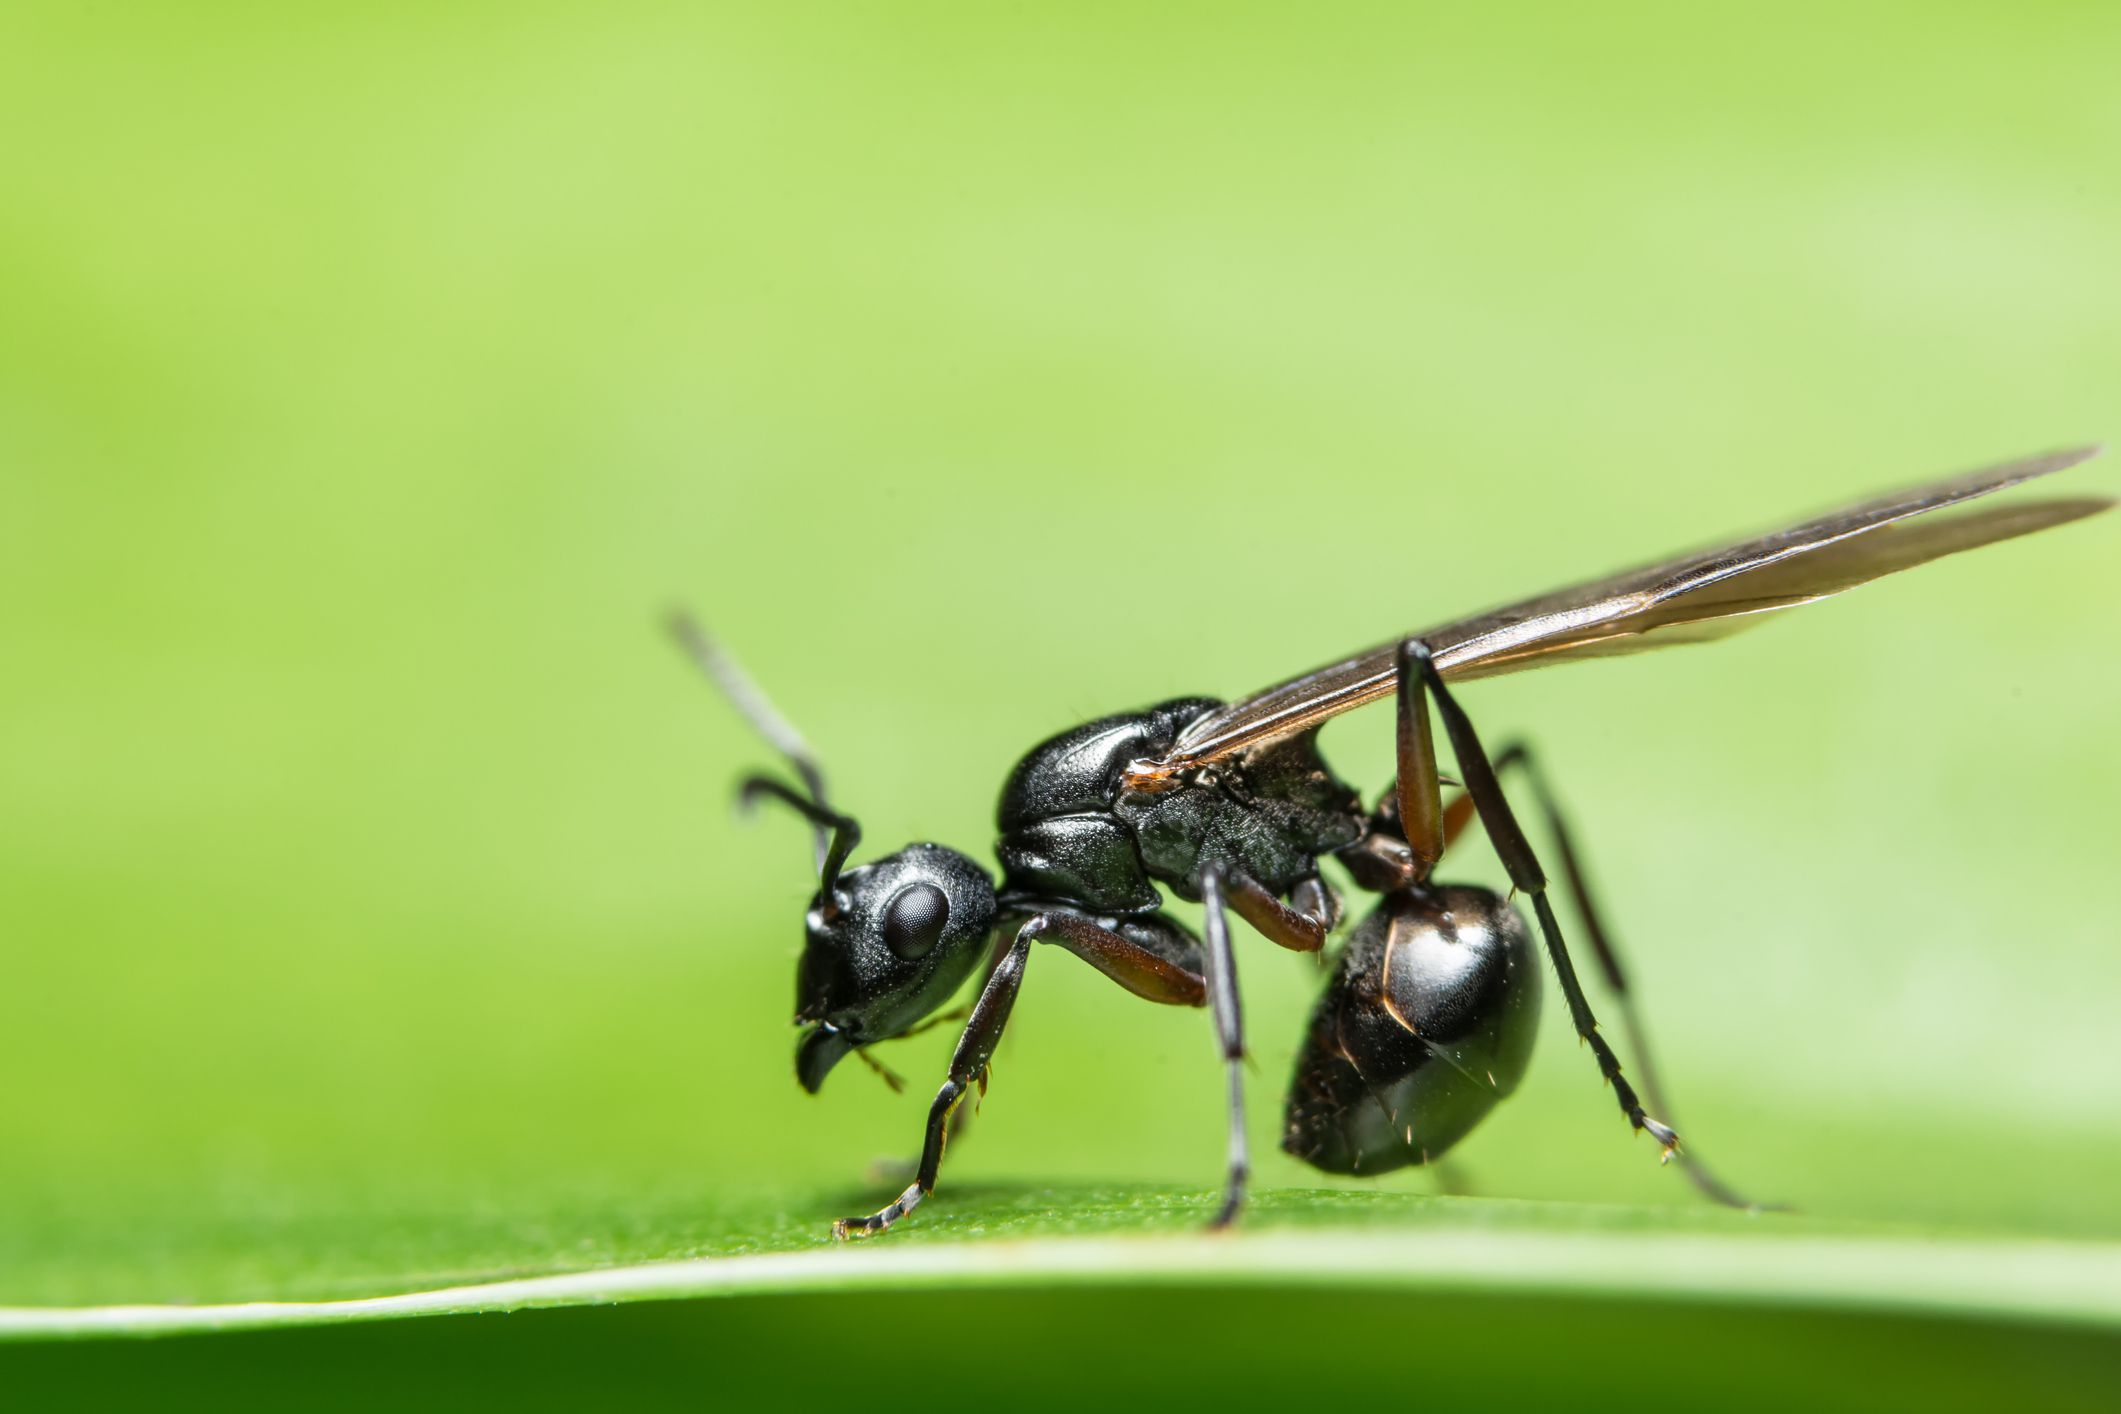 10 tips on how to control flying ants